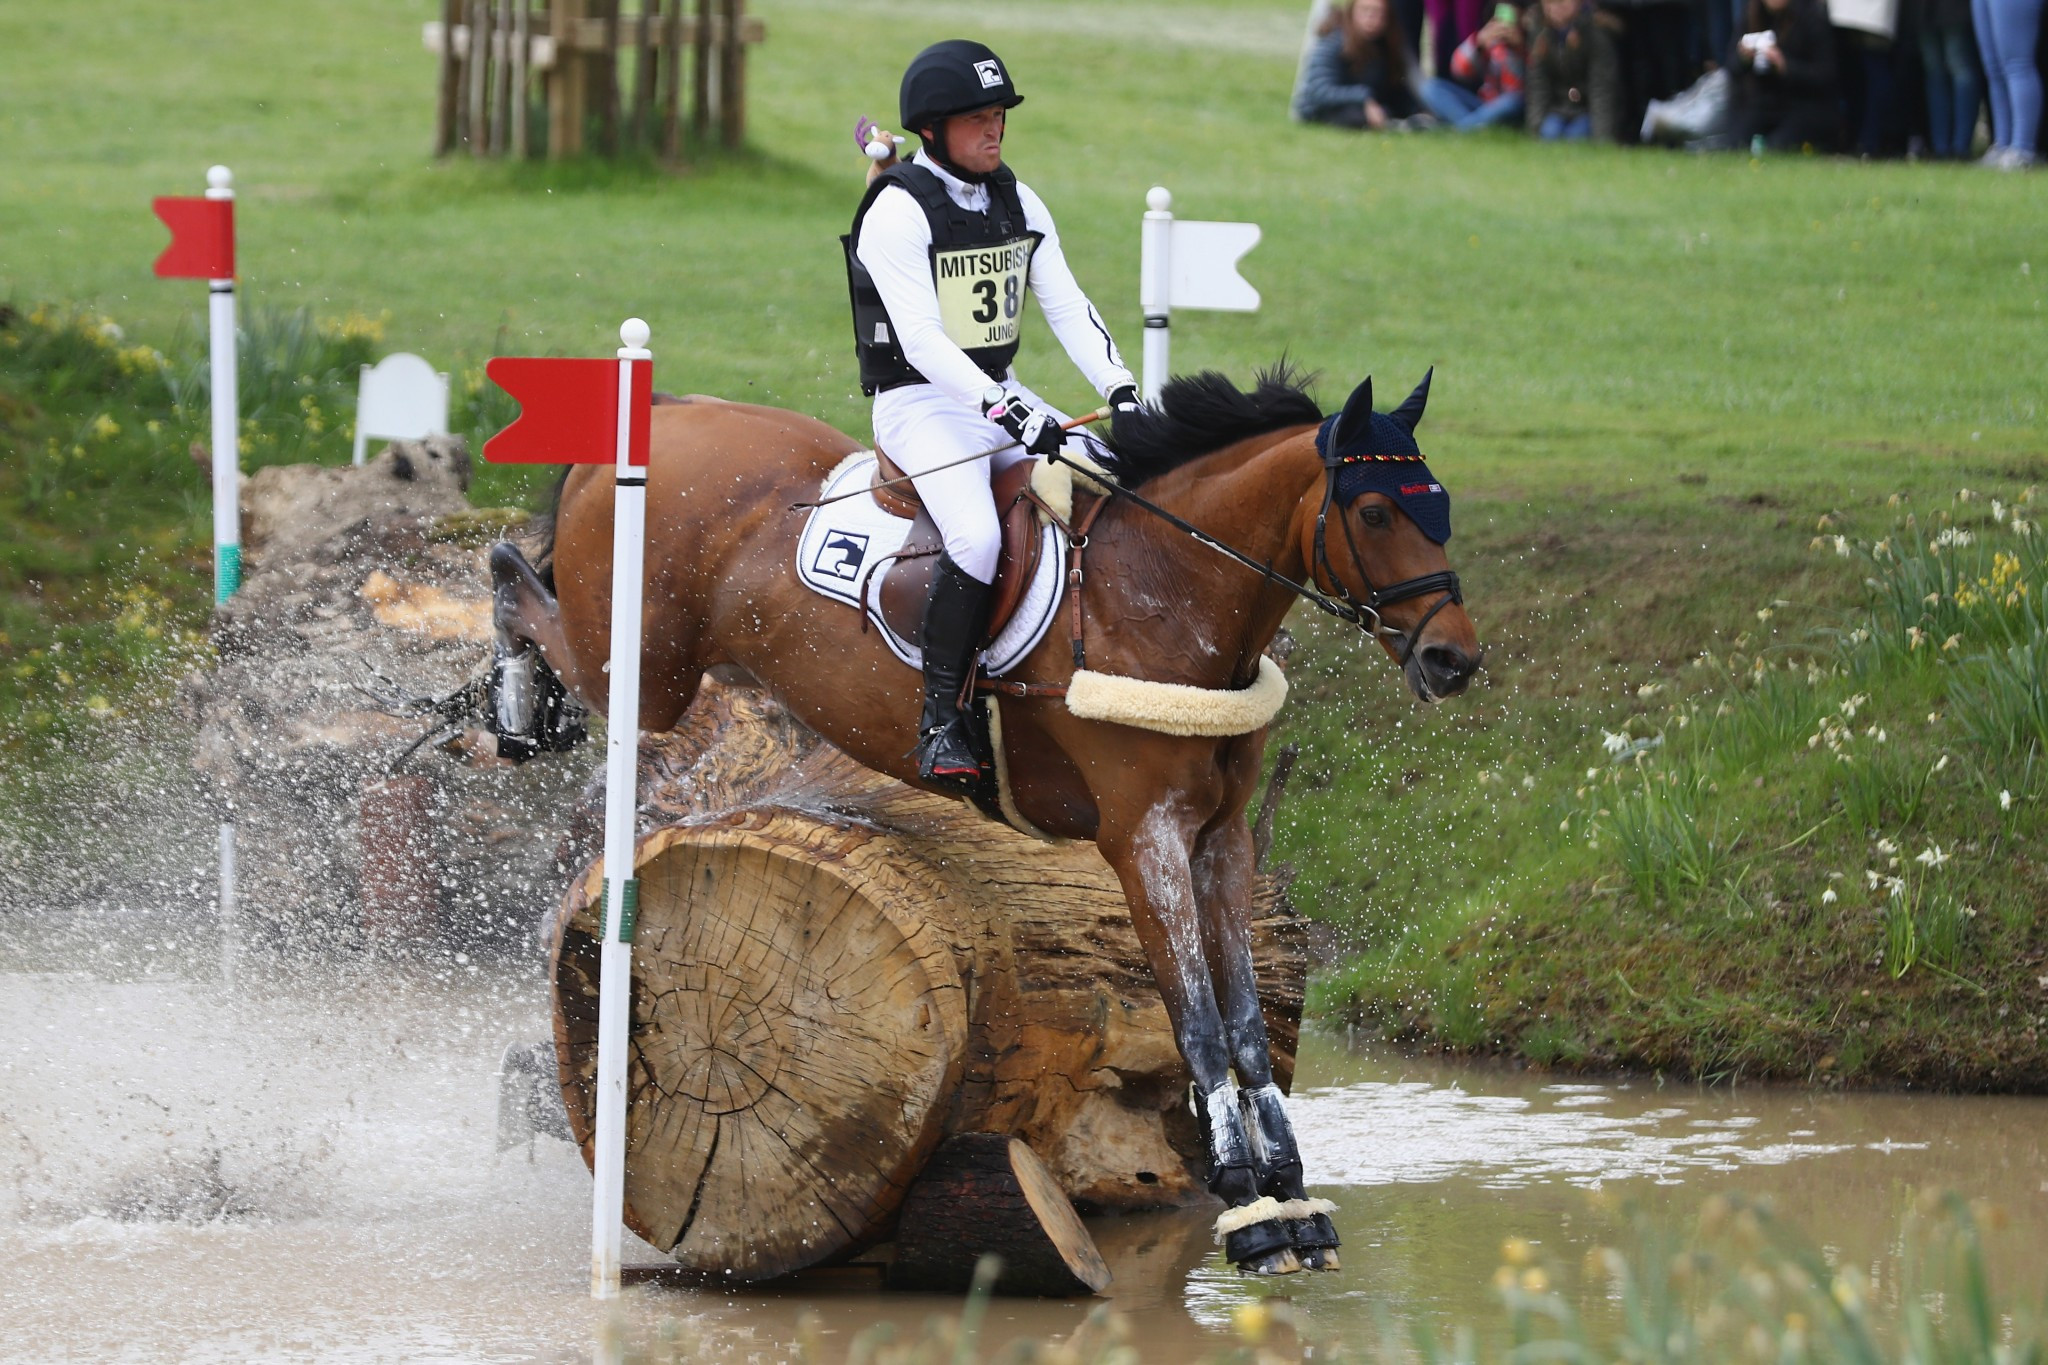 Jung eyes fourth consecutive European eventing crown